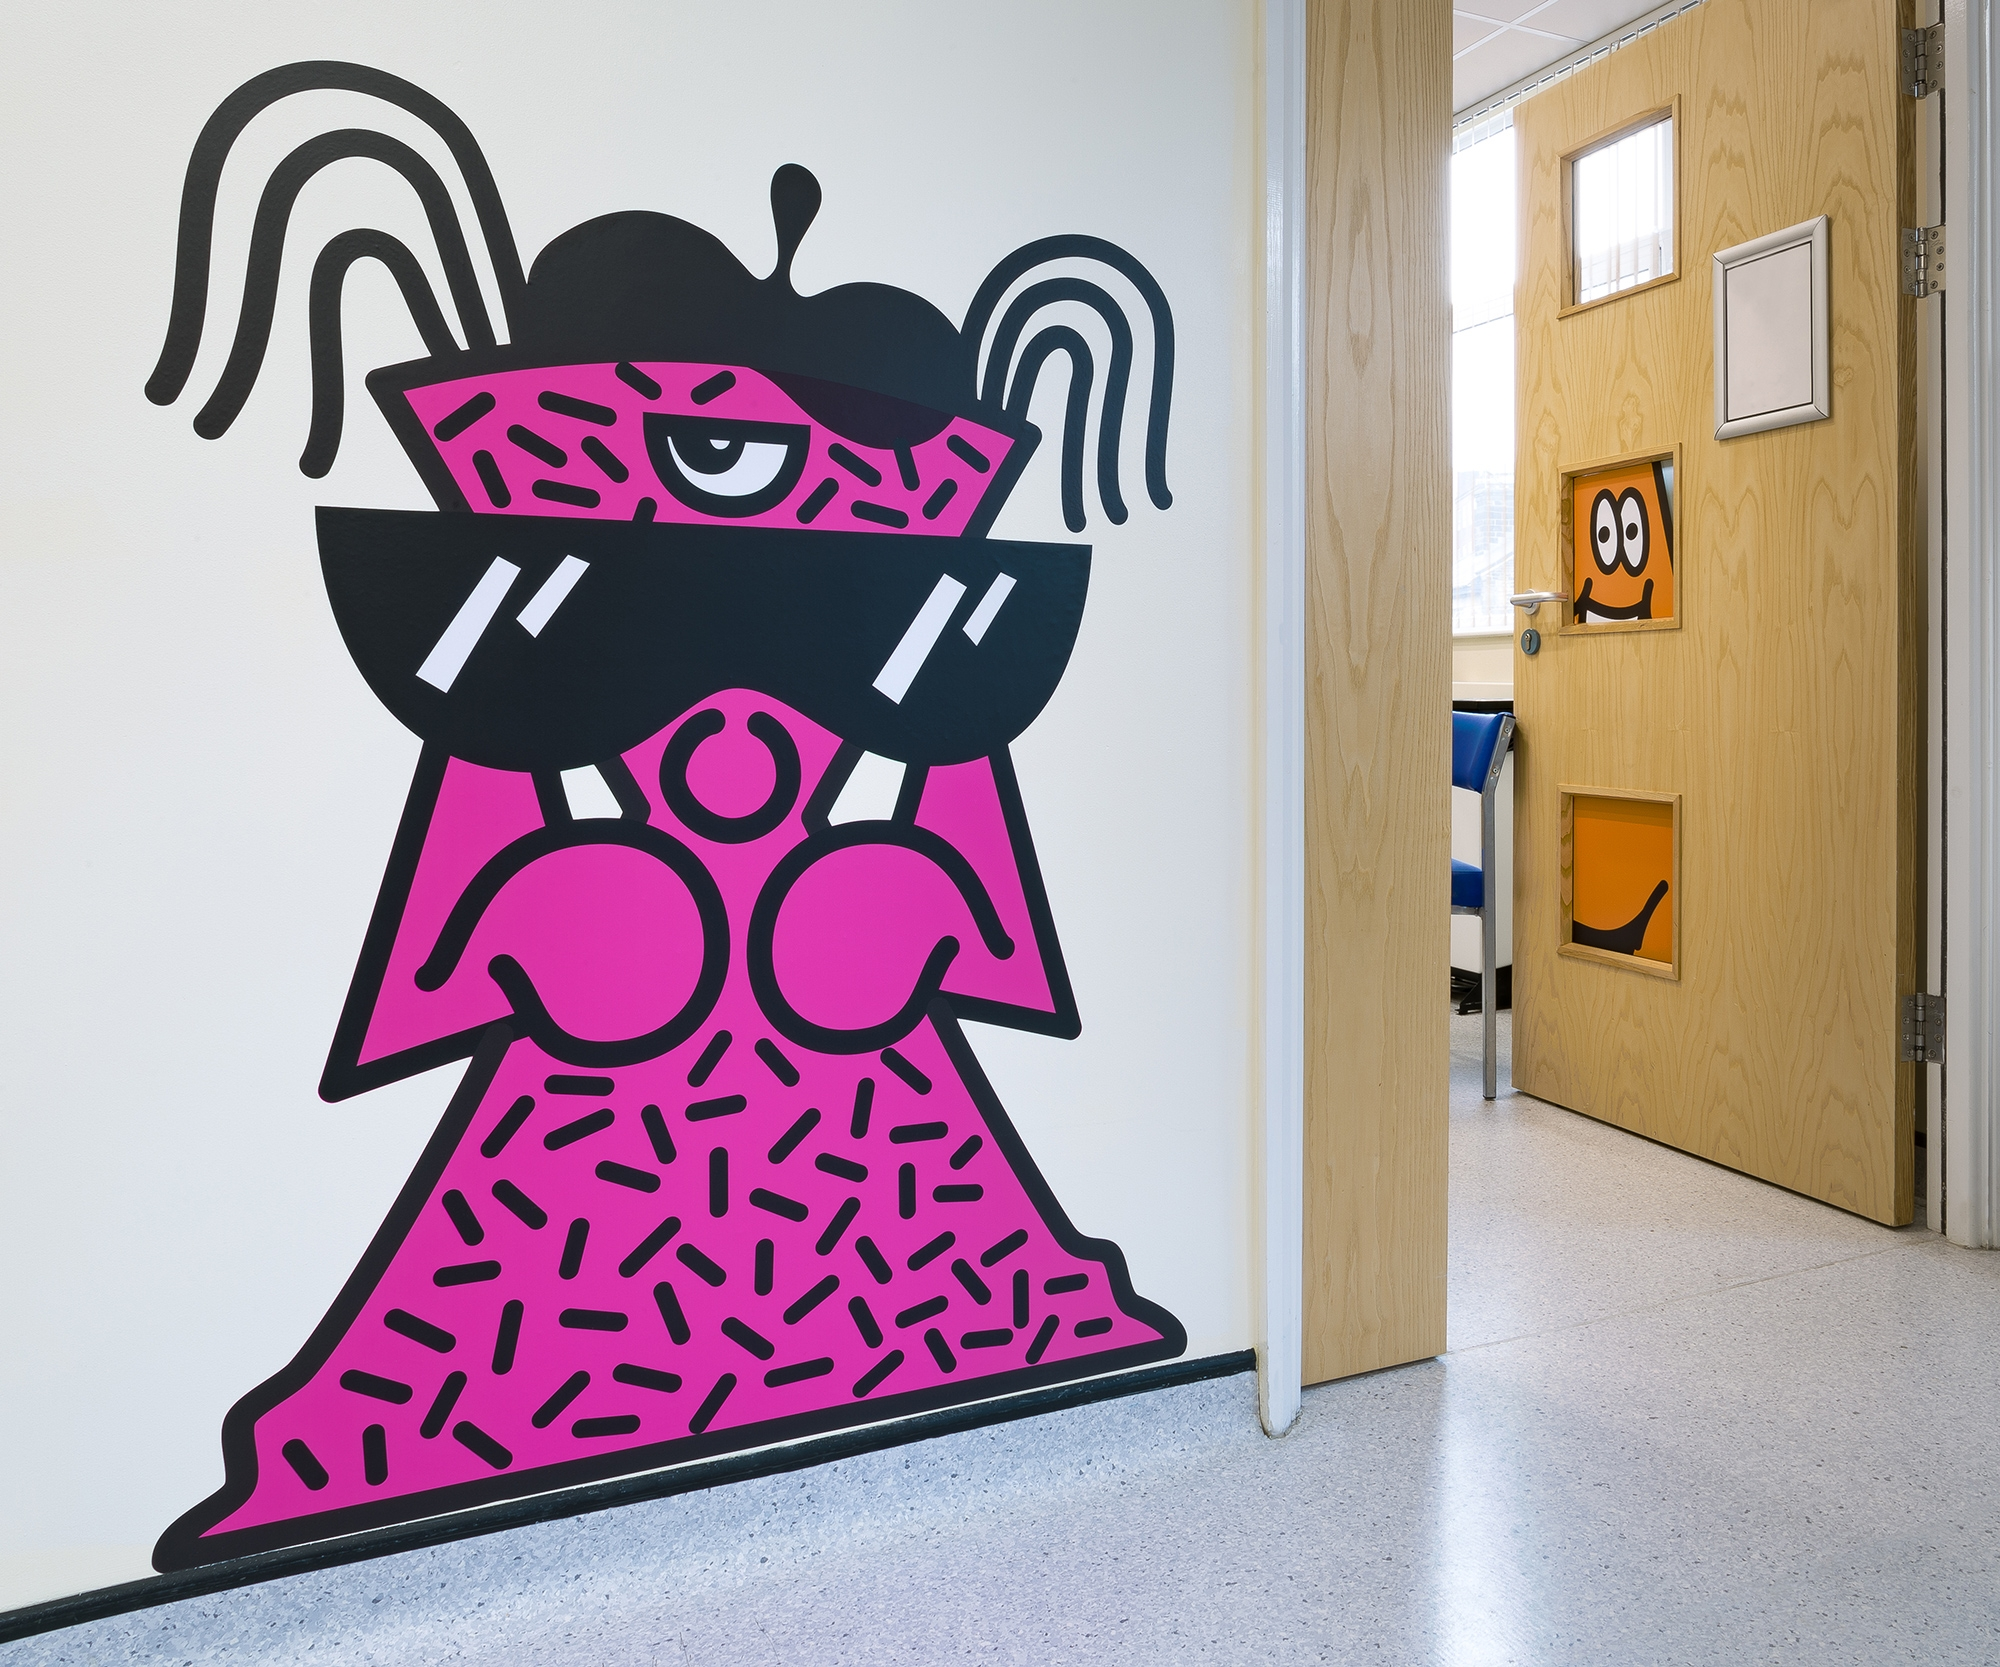 This Illustrator Duo Has Created a Giant Hide-&-Seek Game at a Children's Hospital